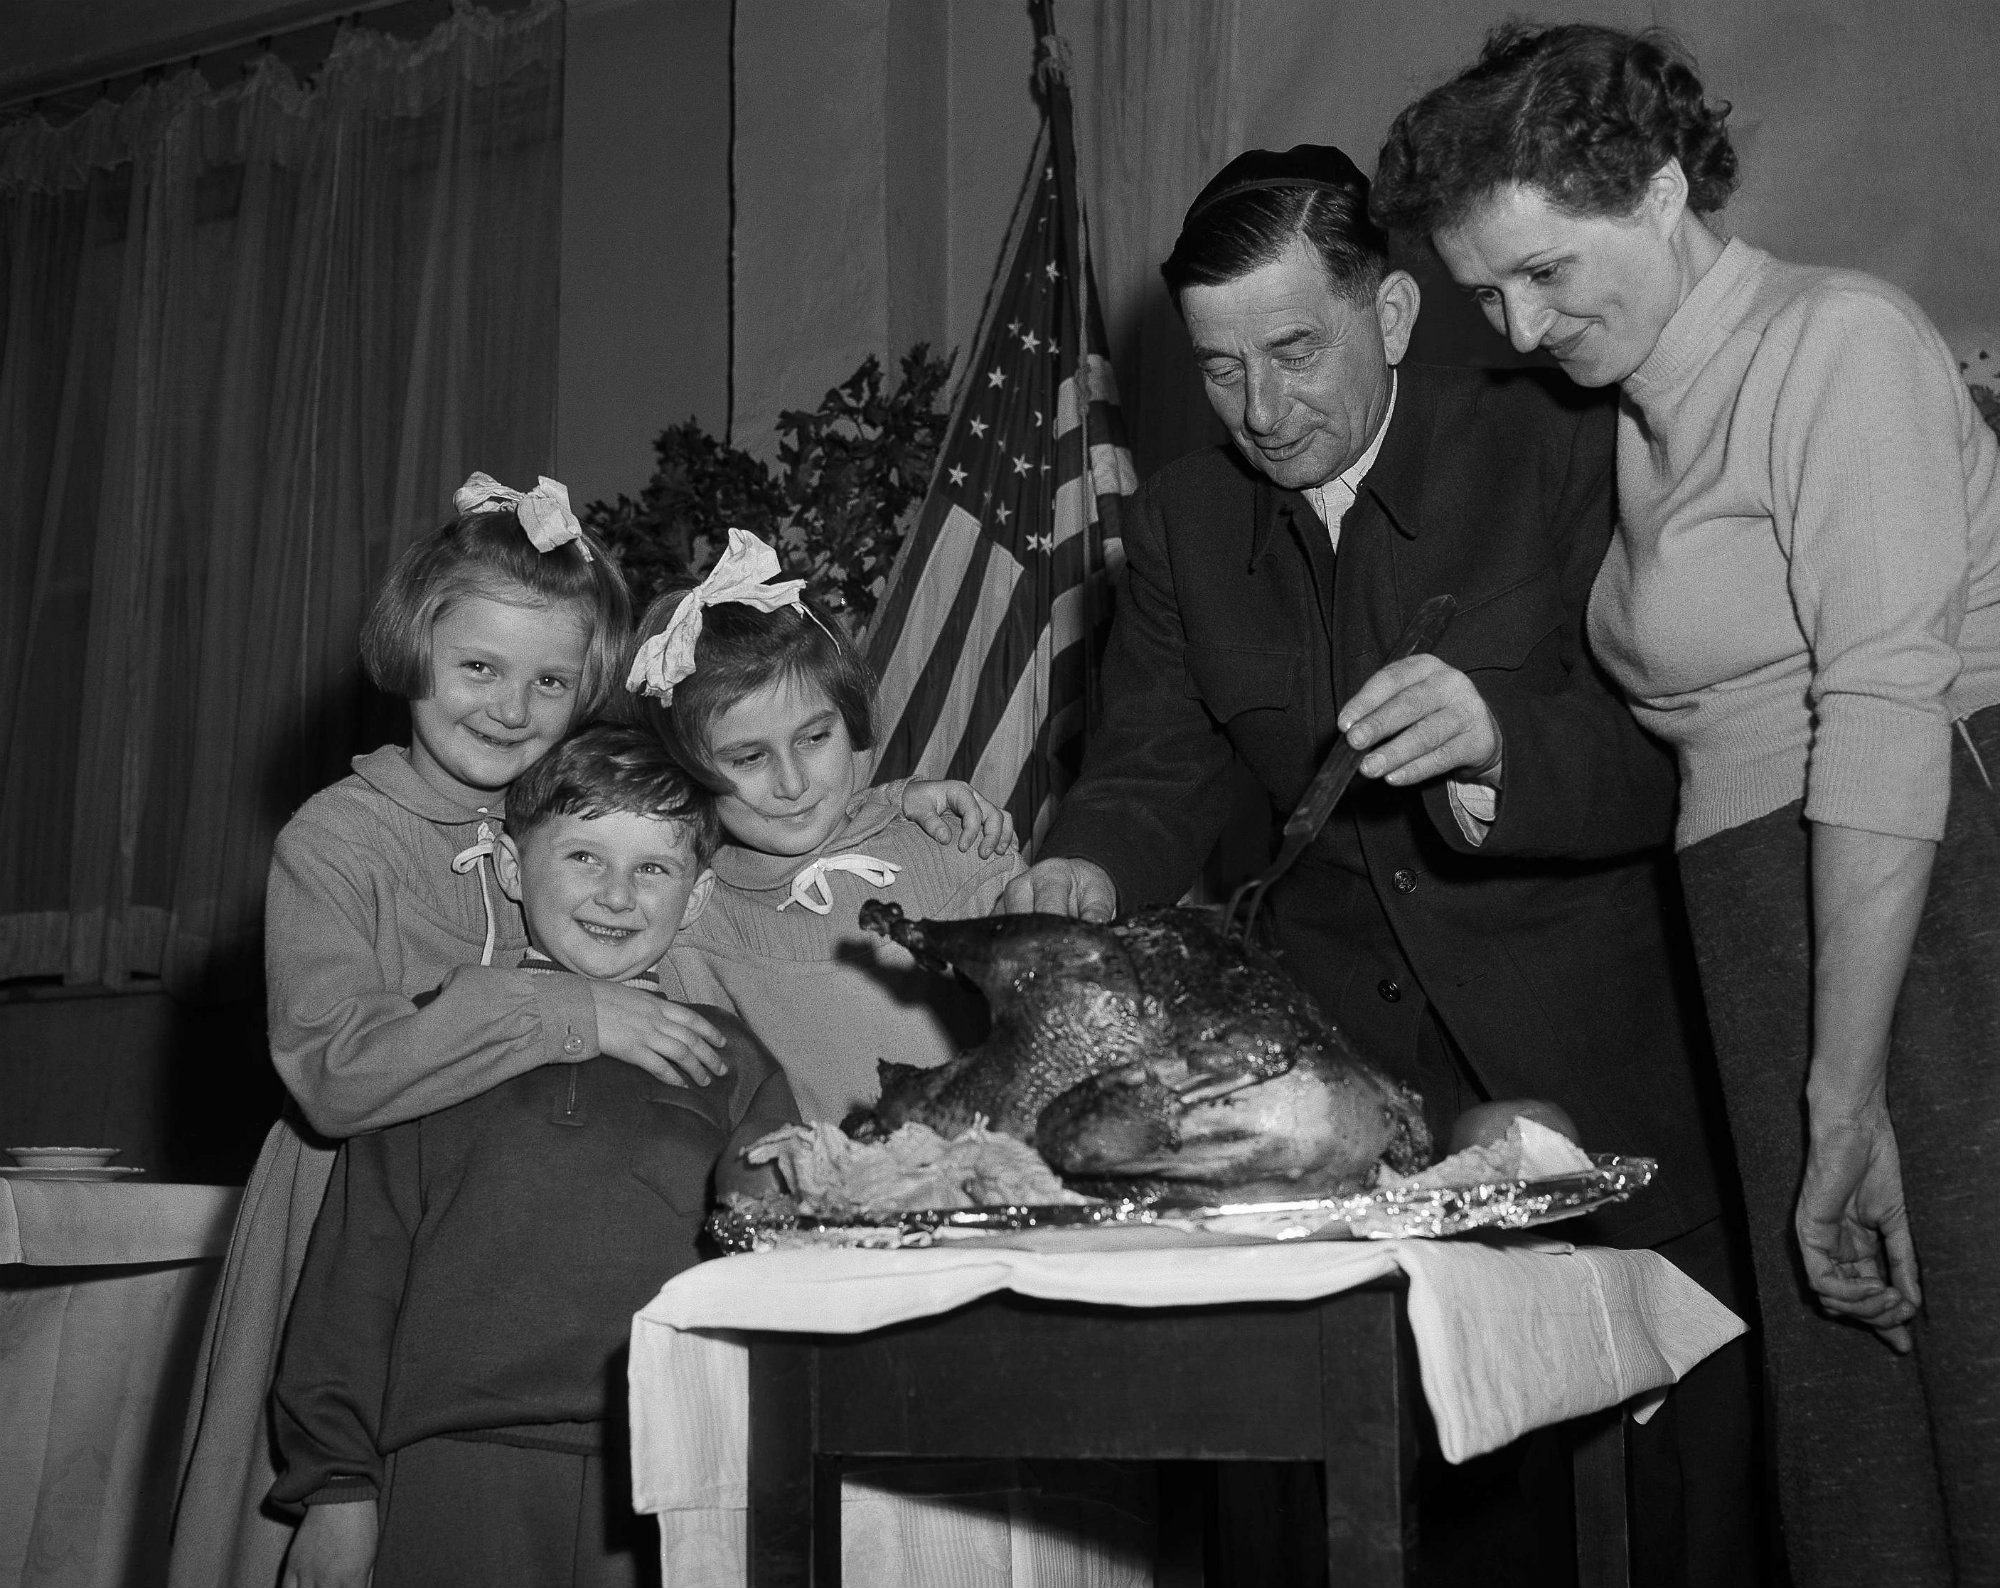 Miksa Frankil, a refugee from Sopron,Hungary, cuts Thanksgiving turkey for his children, from left, Susan, Alex, Edith and his wife Judith on November 22, 1956 in New York. The family arrived with the first group of refugees flown to this country.